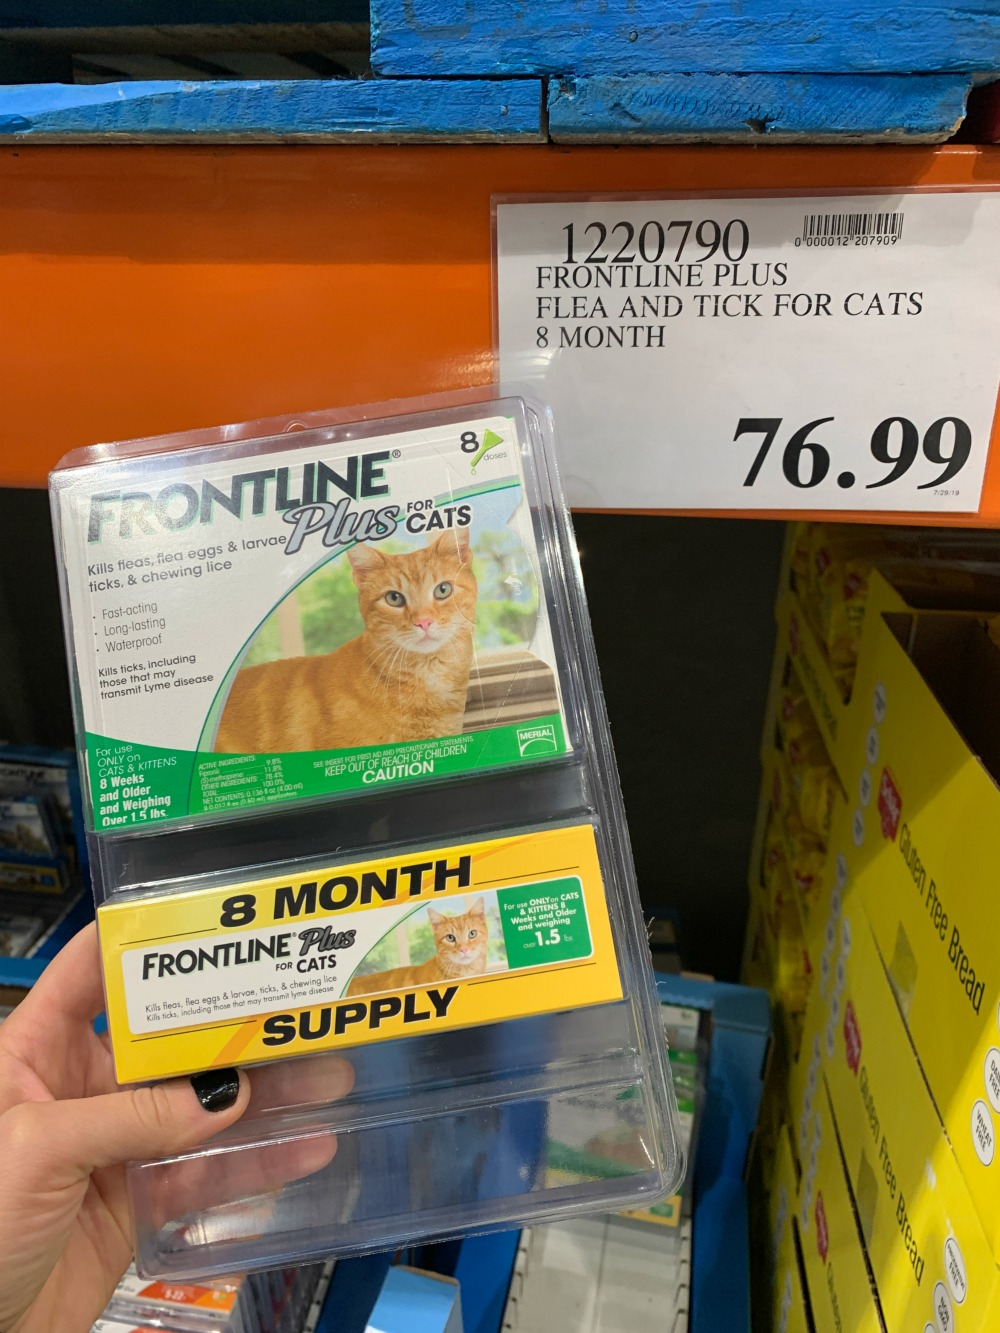 Frontline Plus for Cats packaging at Costco